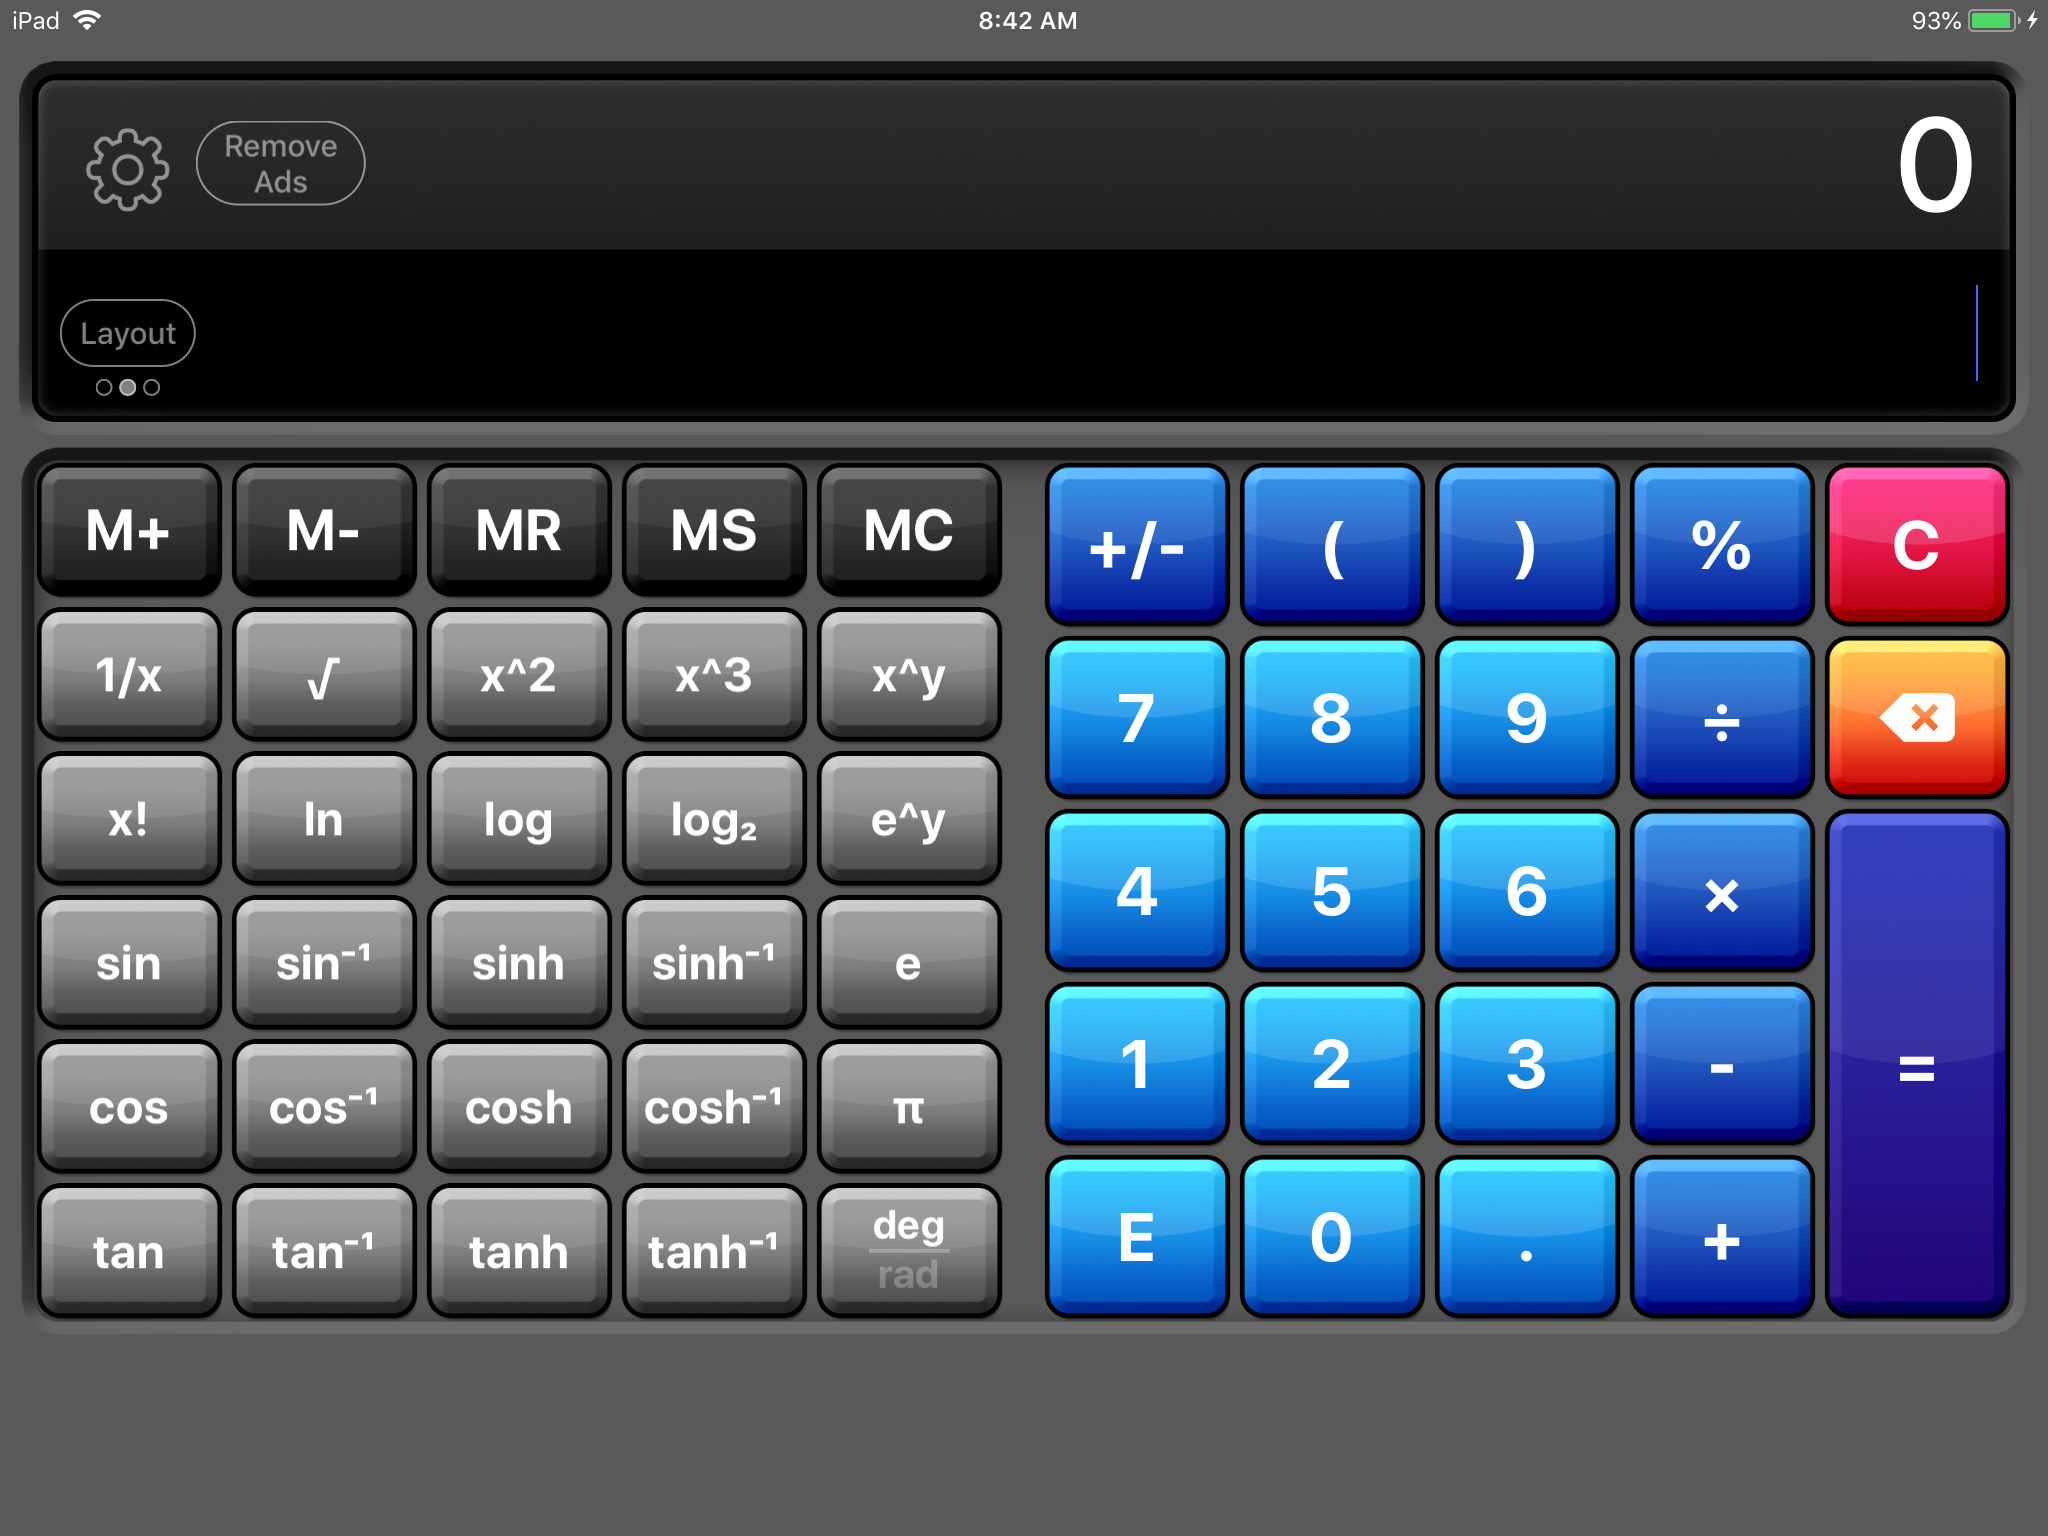 Most expensive calculator.